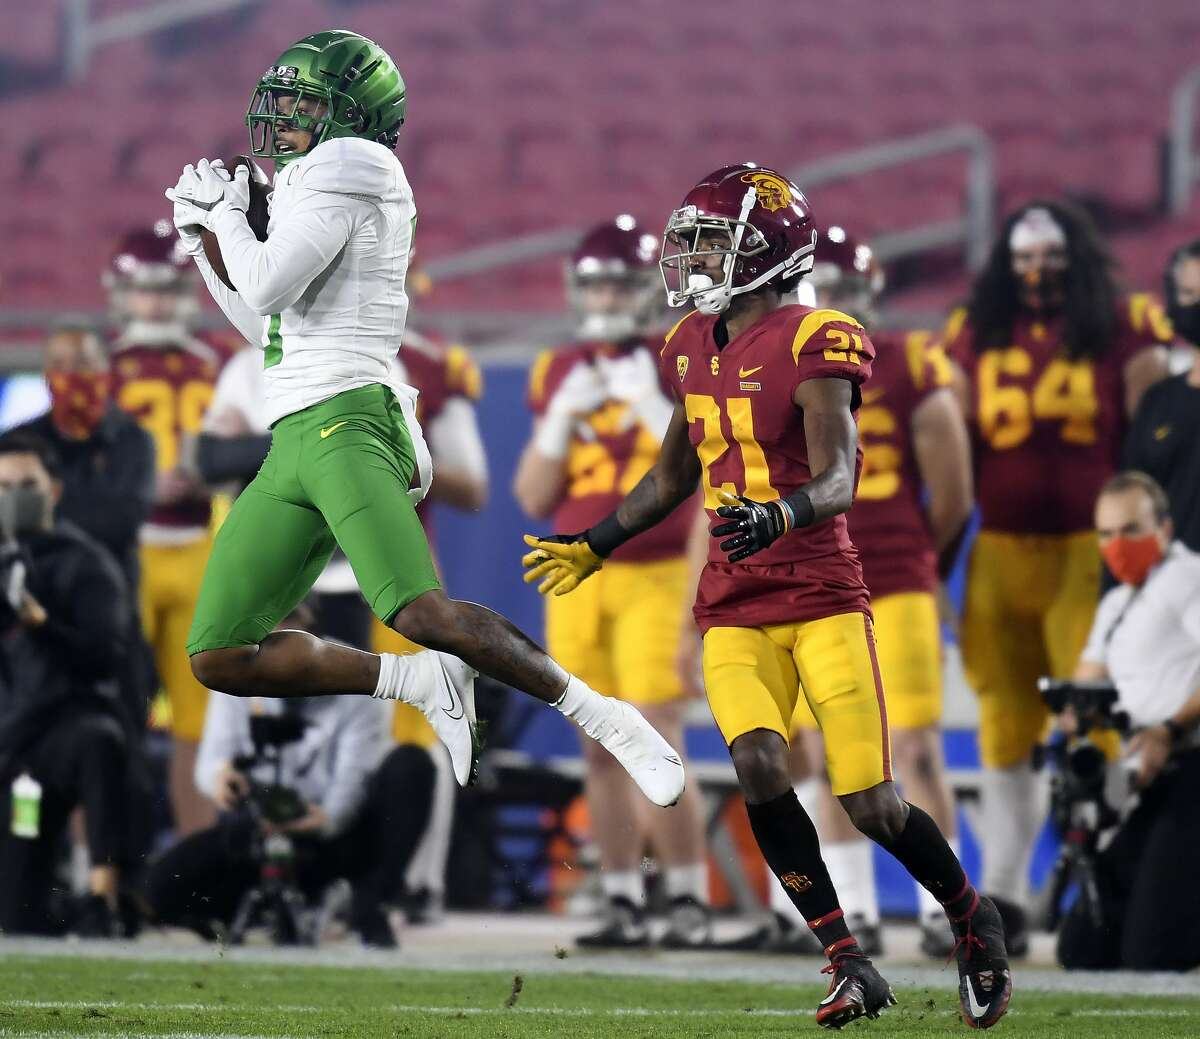 LOS ANGELES, CALIFORNIA - DECEMBER 18: Deommodore Lenoir #0 of the Oregon Ducks intercepts a pass to Tyler Vaughns #21 of the USC Trojans during the first quarter in the PAC 12 2020 Football Championship at United Airlines Field at the Coliseum on December 18, 2020 in Los Angeles, California. (Photo by Harry How/Getty Images)